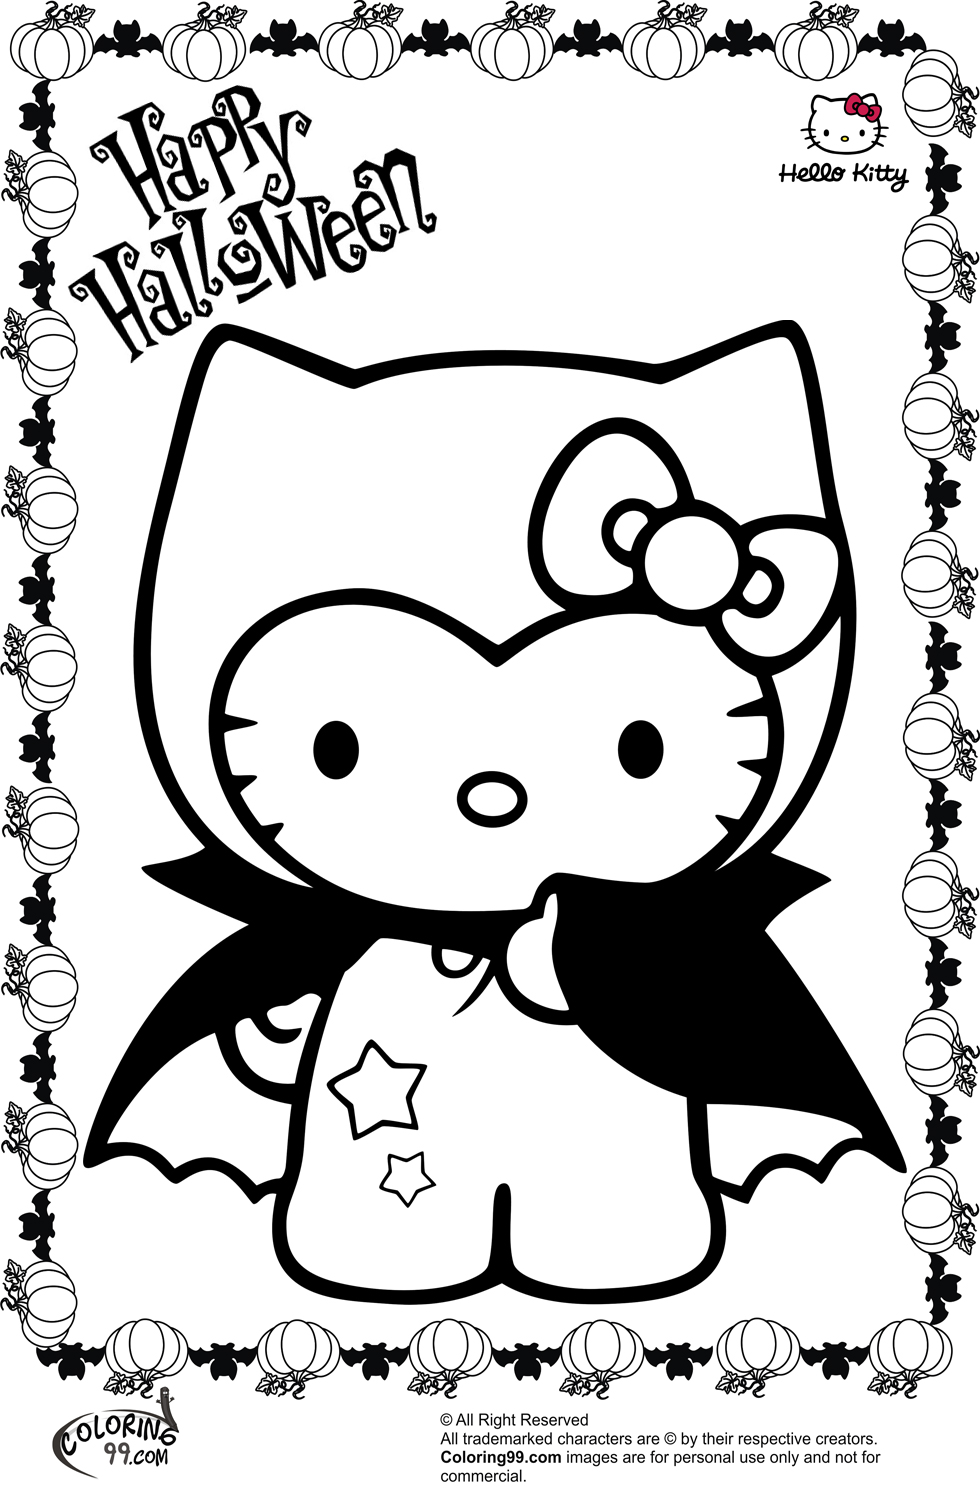 haloween coloring pages rookie saturday printable halloween coloring pages pages coloring haloween